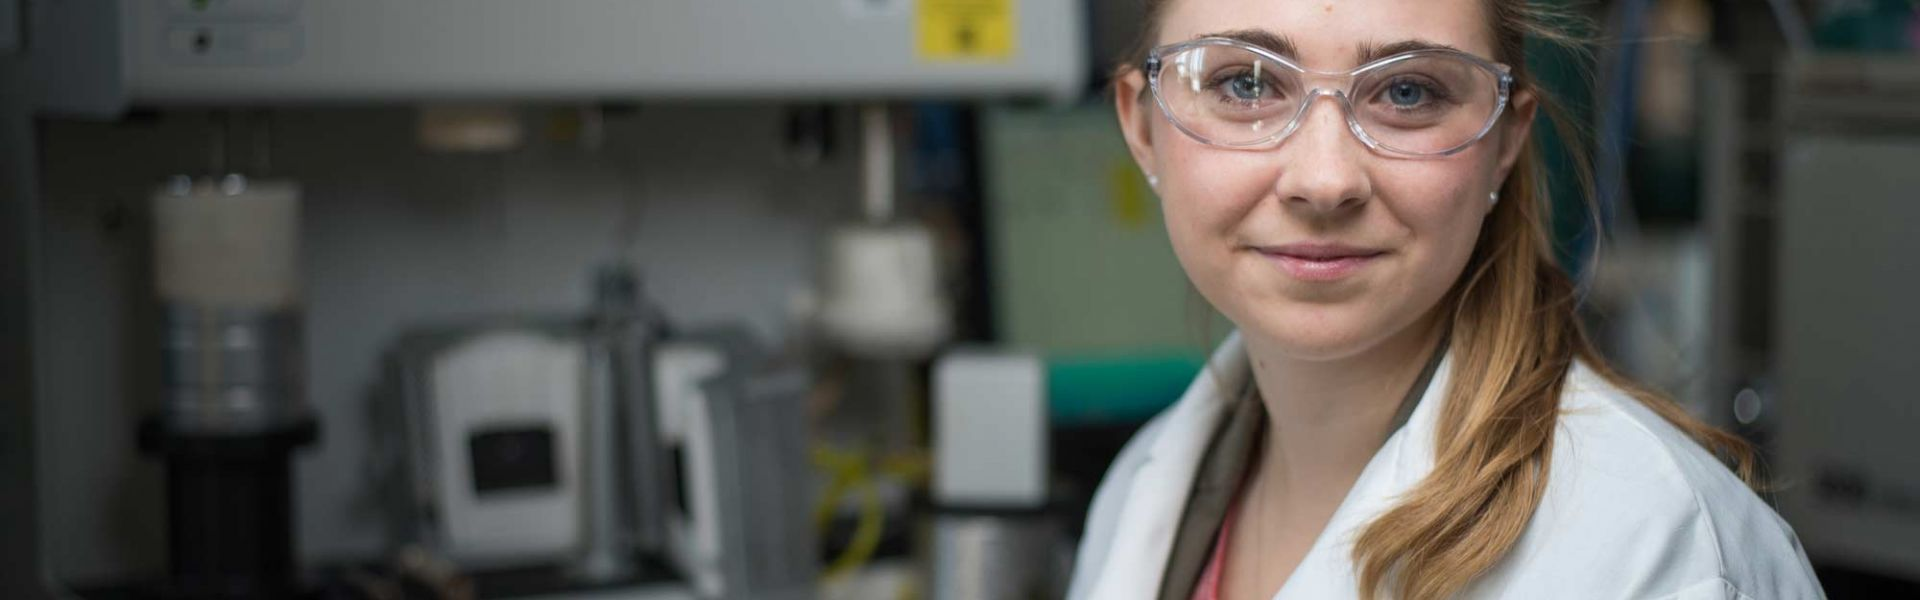 Female engineering student in lab